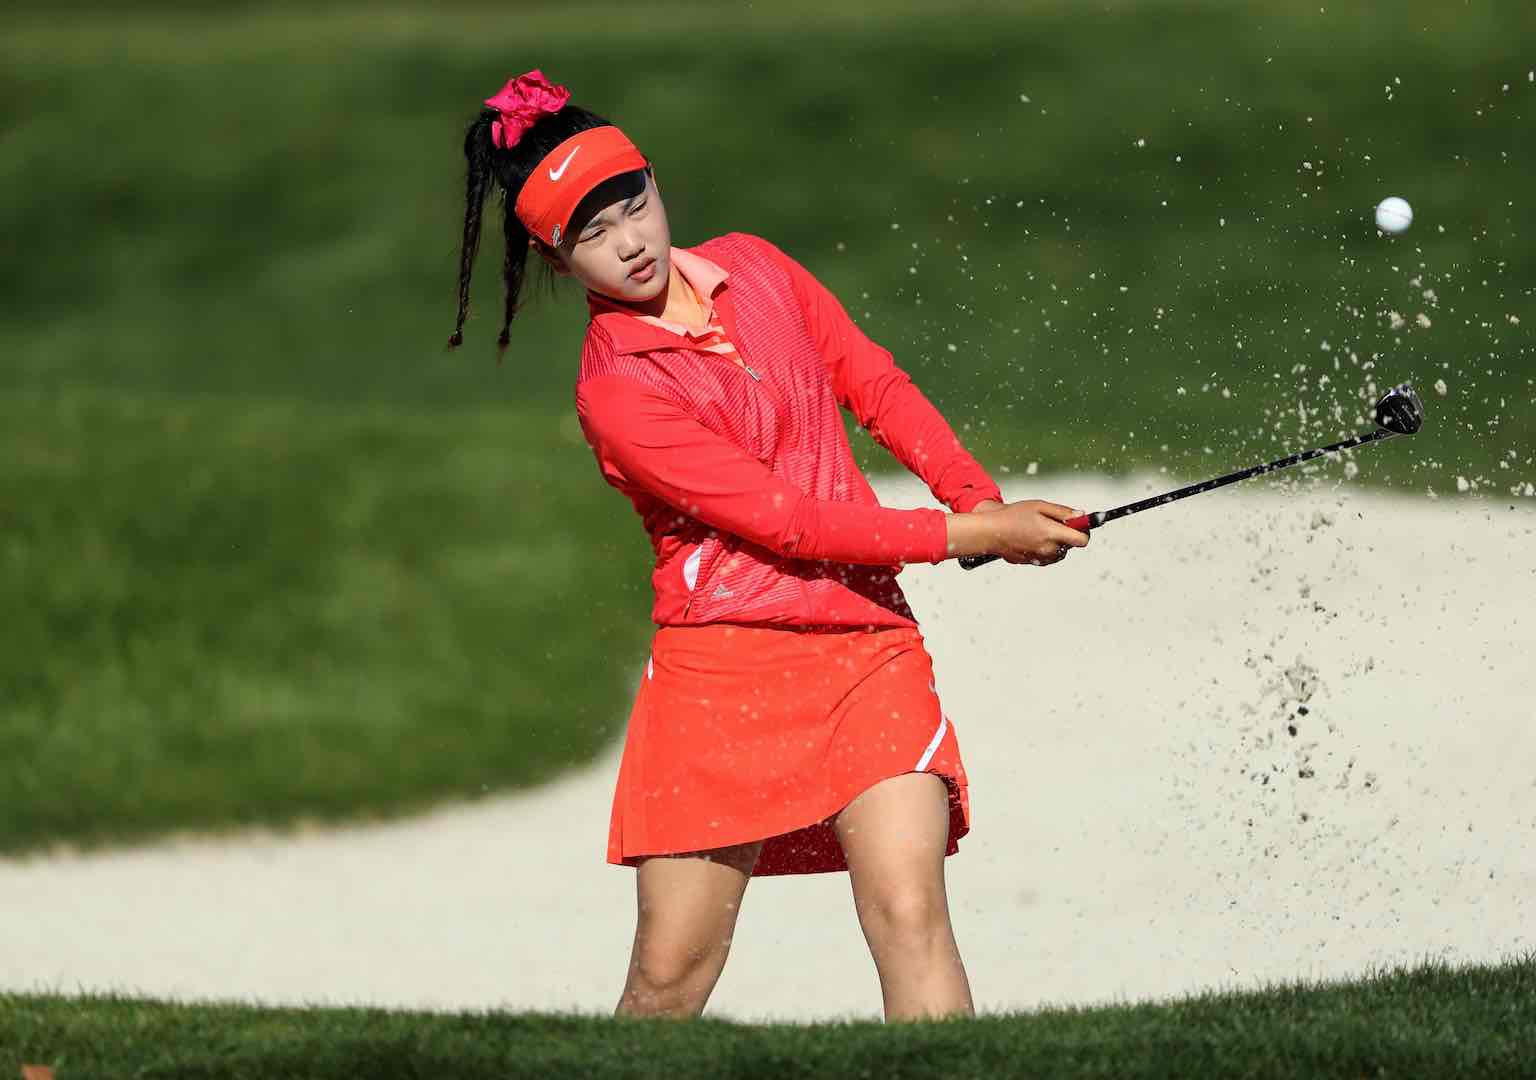 14–year old Lucy Li shoots 71